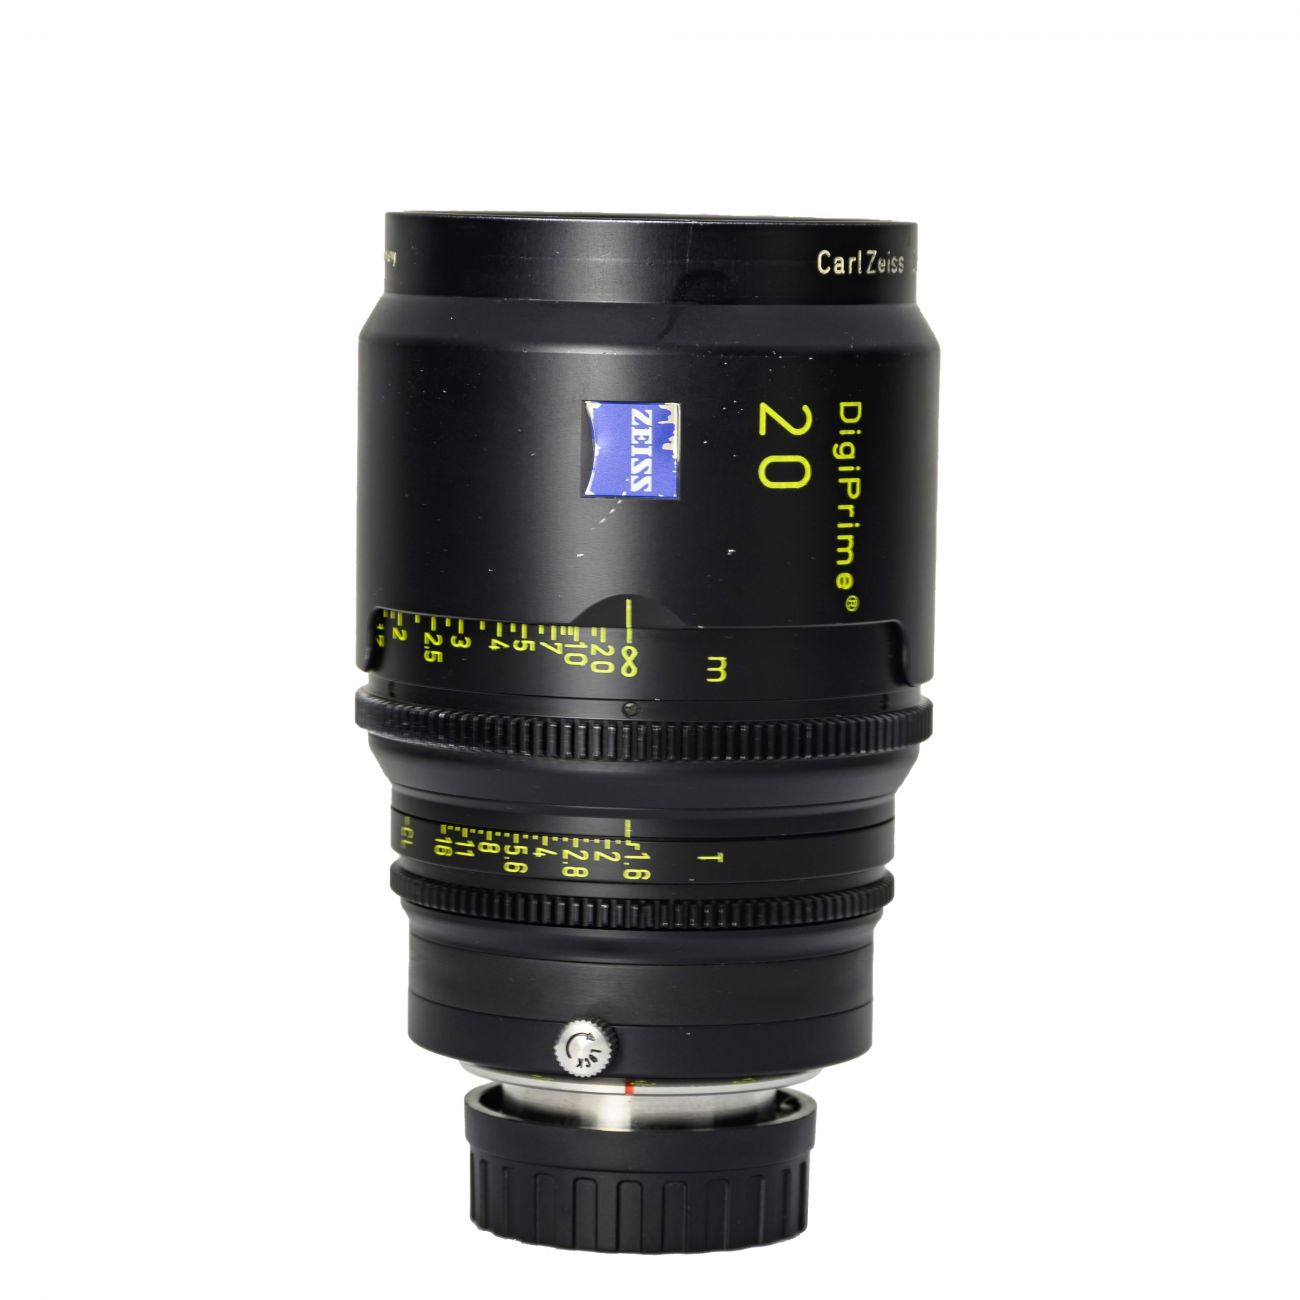 20mm lens Carl Zeiss DigiPrime Distagon T1.6 B4-mount